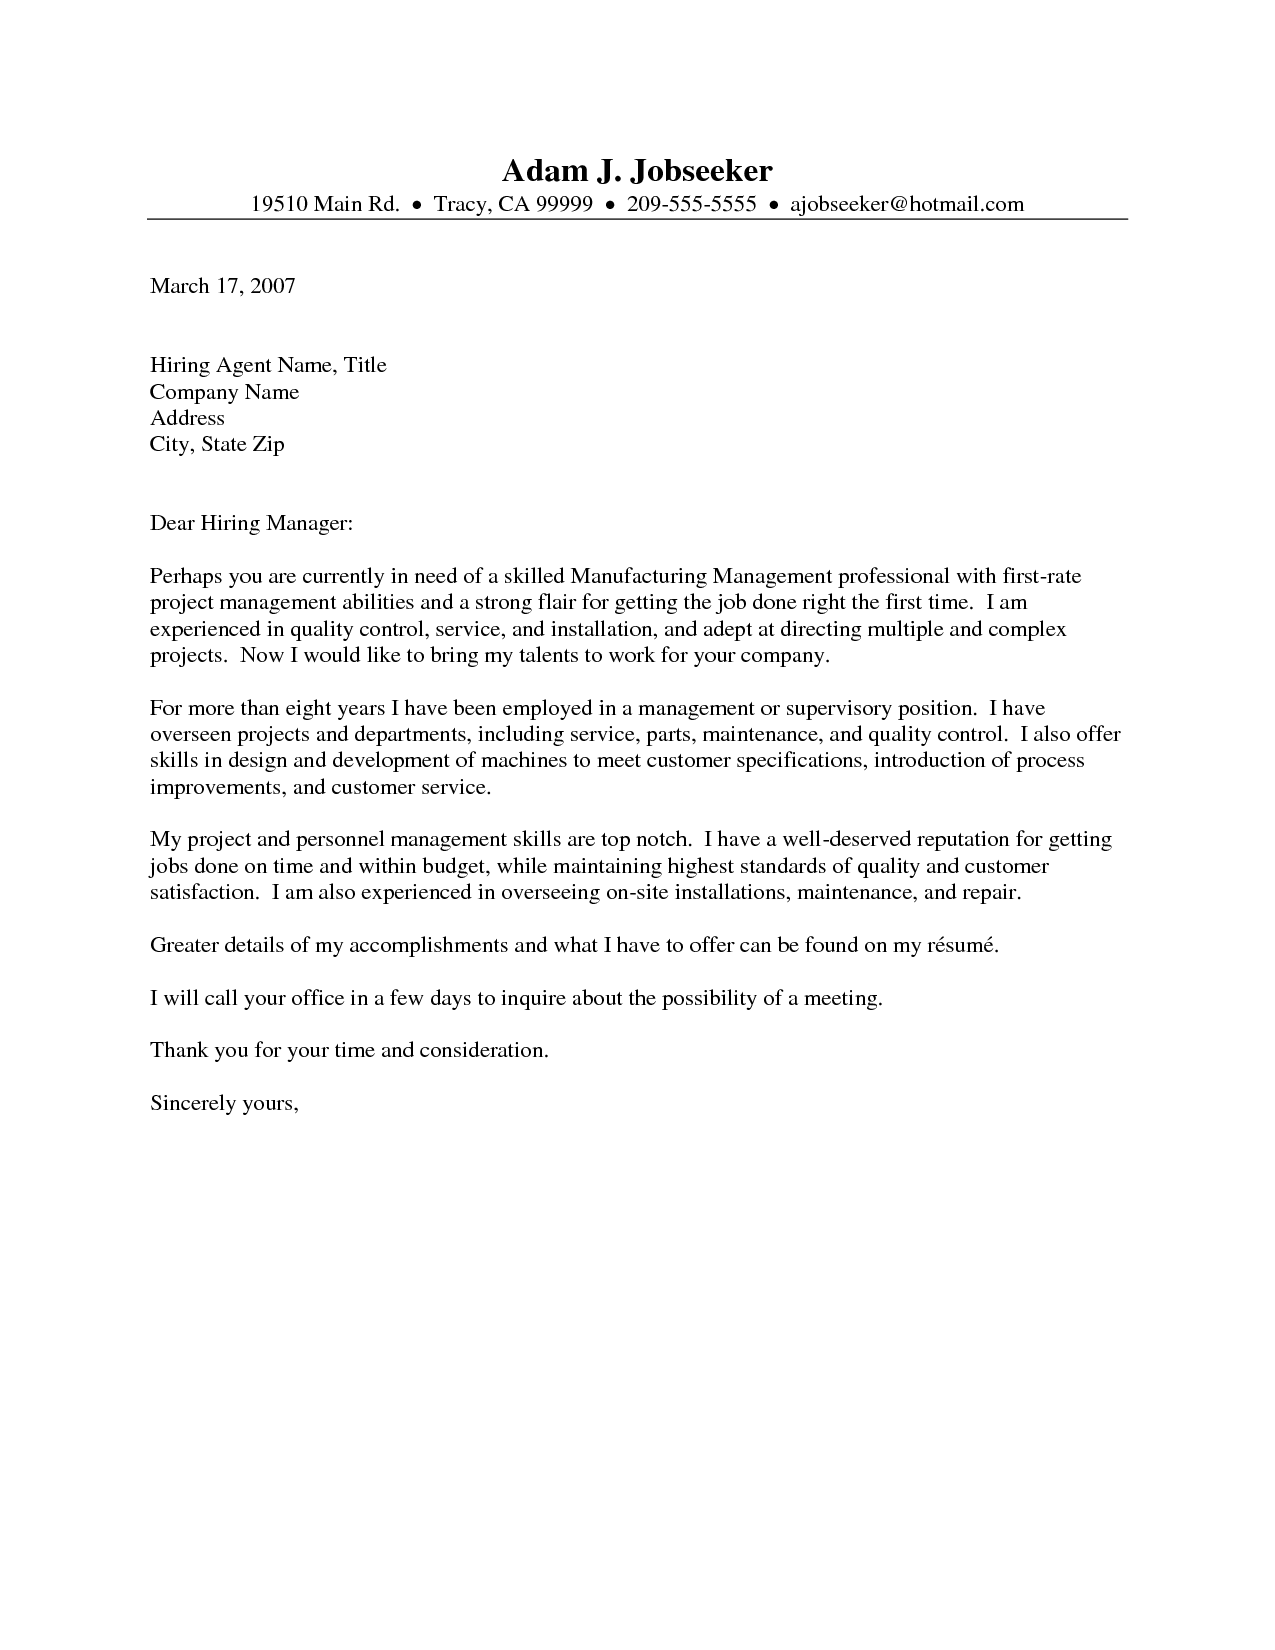 Appealing Certified Medical Assistant Cover Letter Sample 15 For